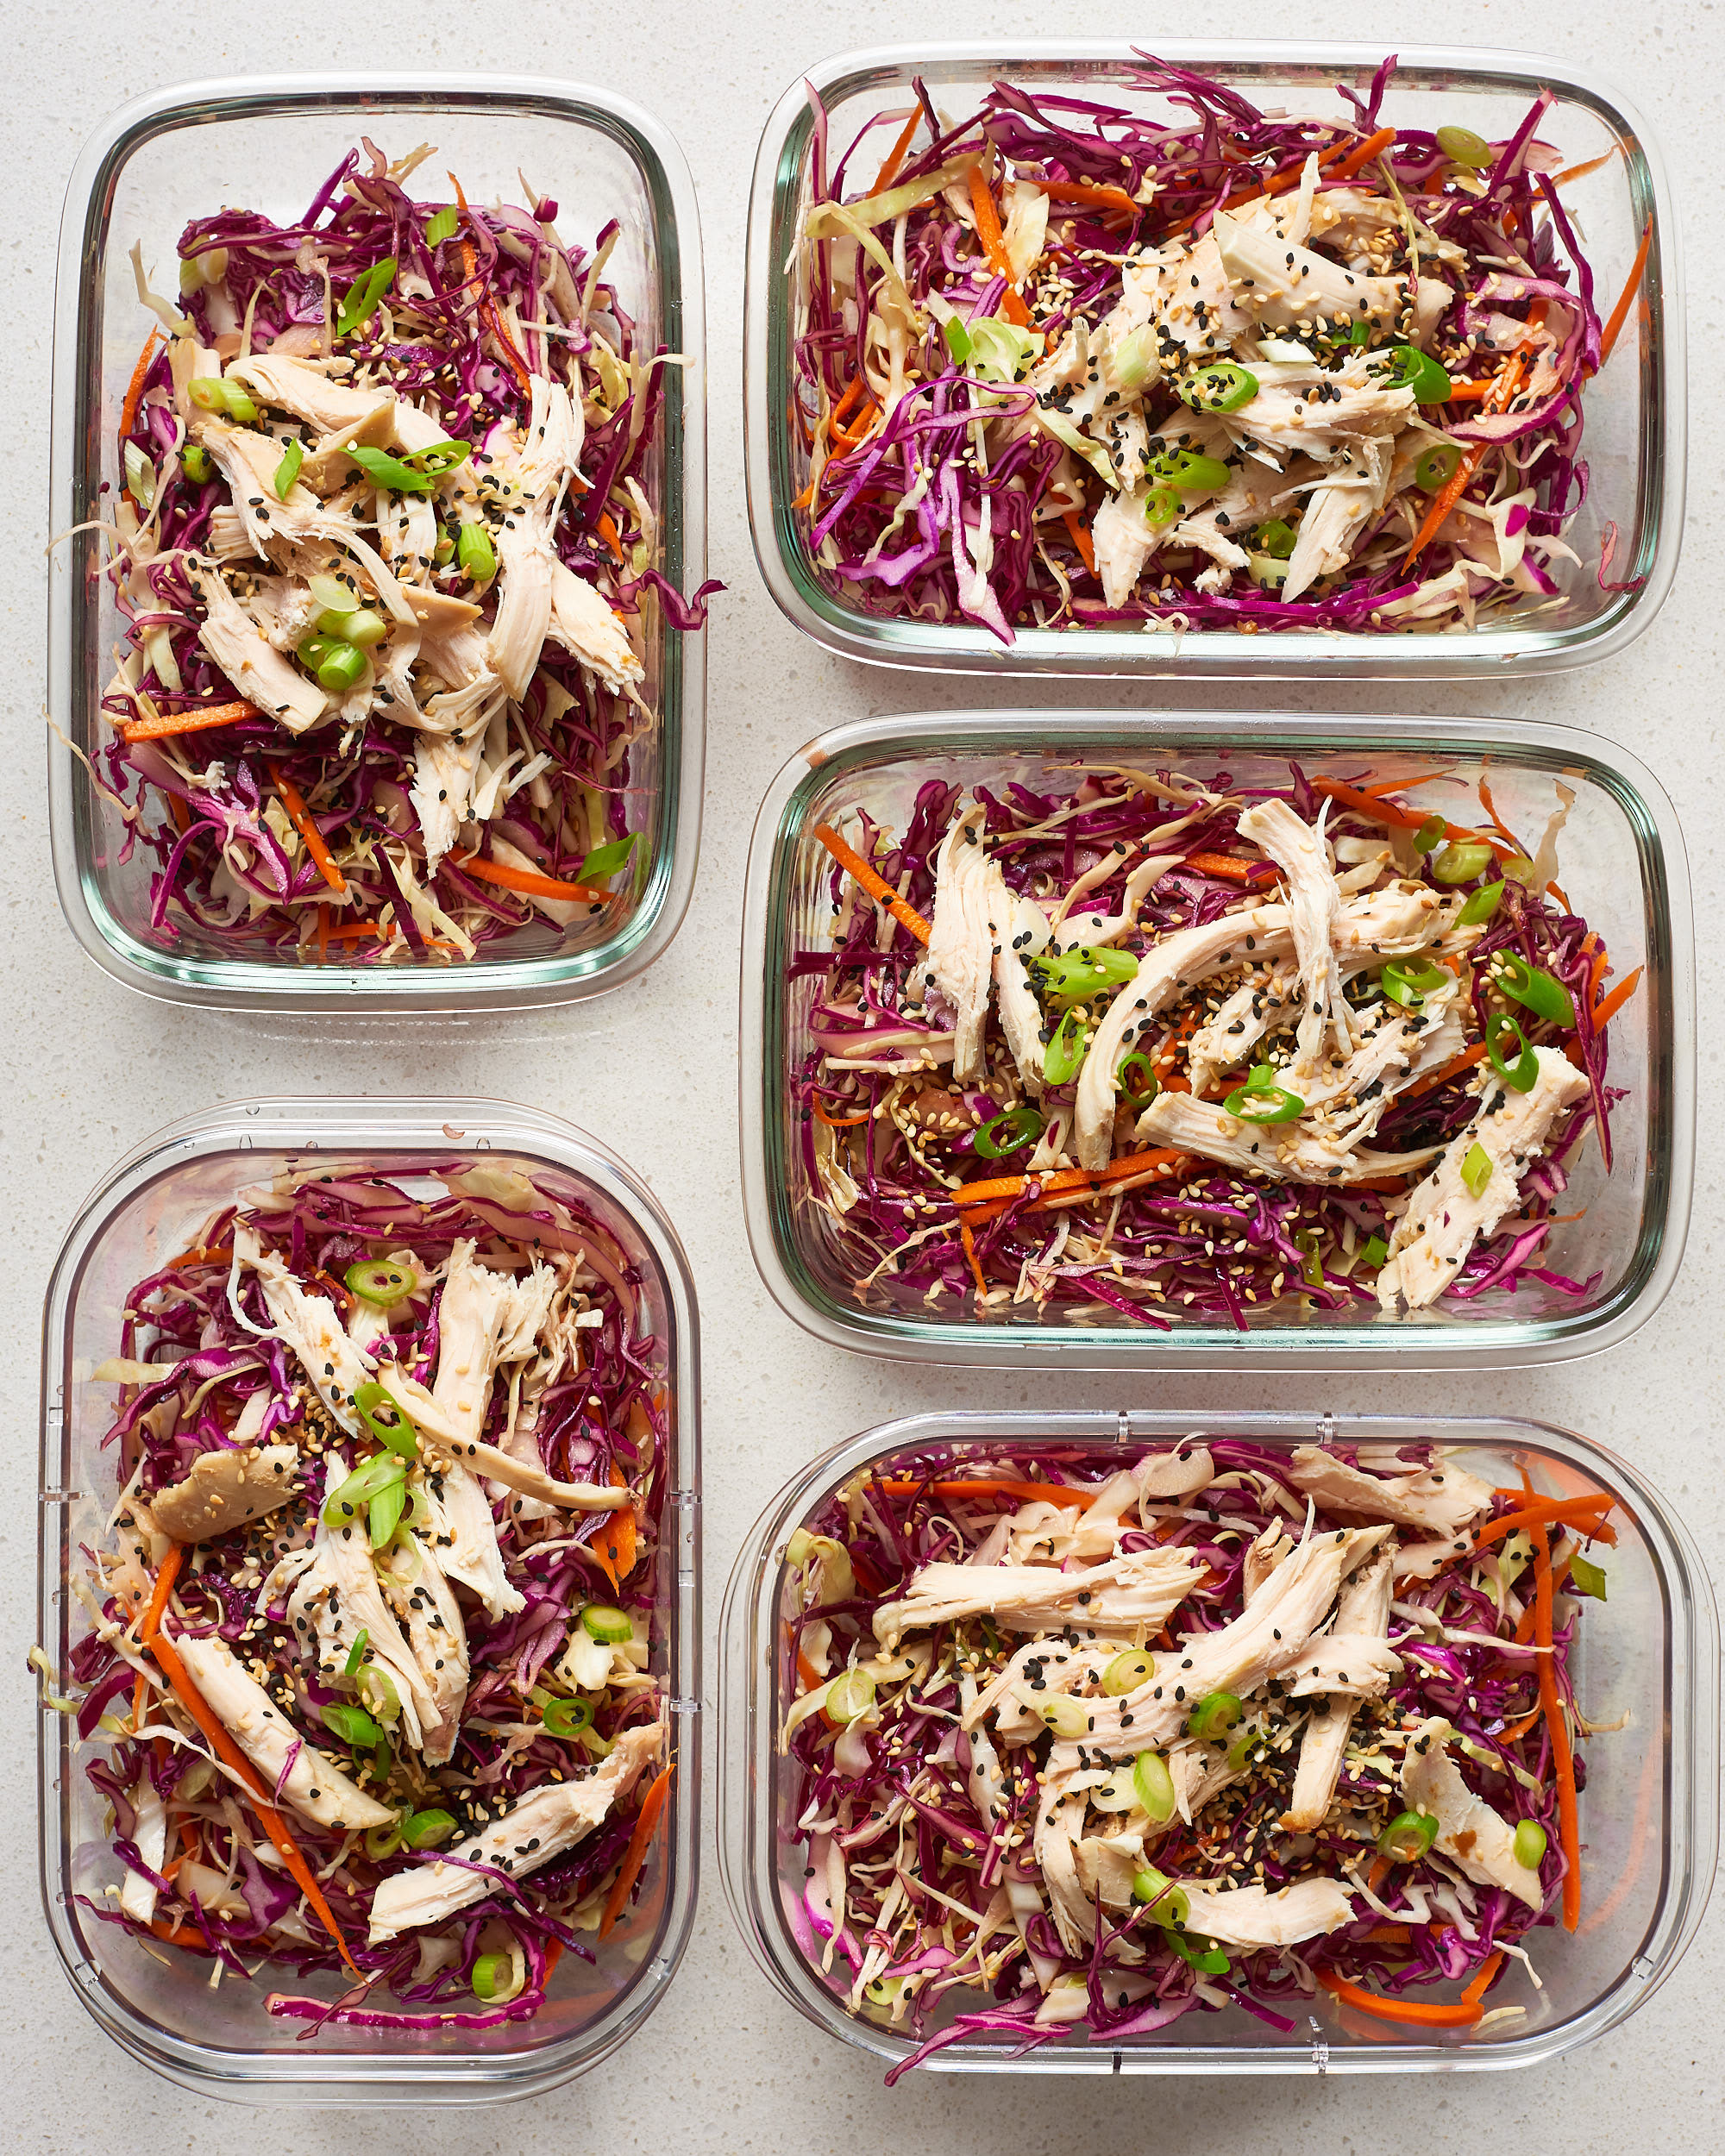 Meal Prep Plan: A Week of Easy Whole30 Meals